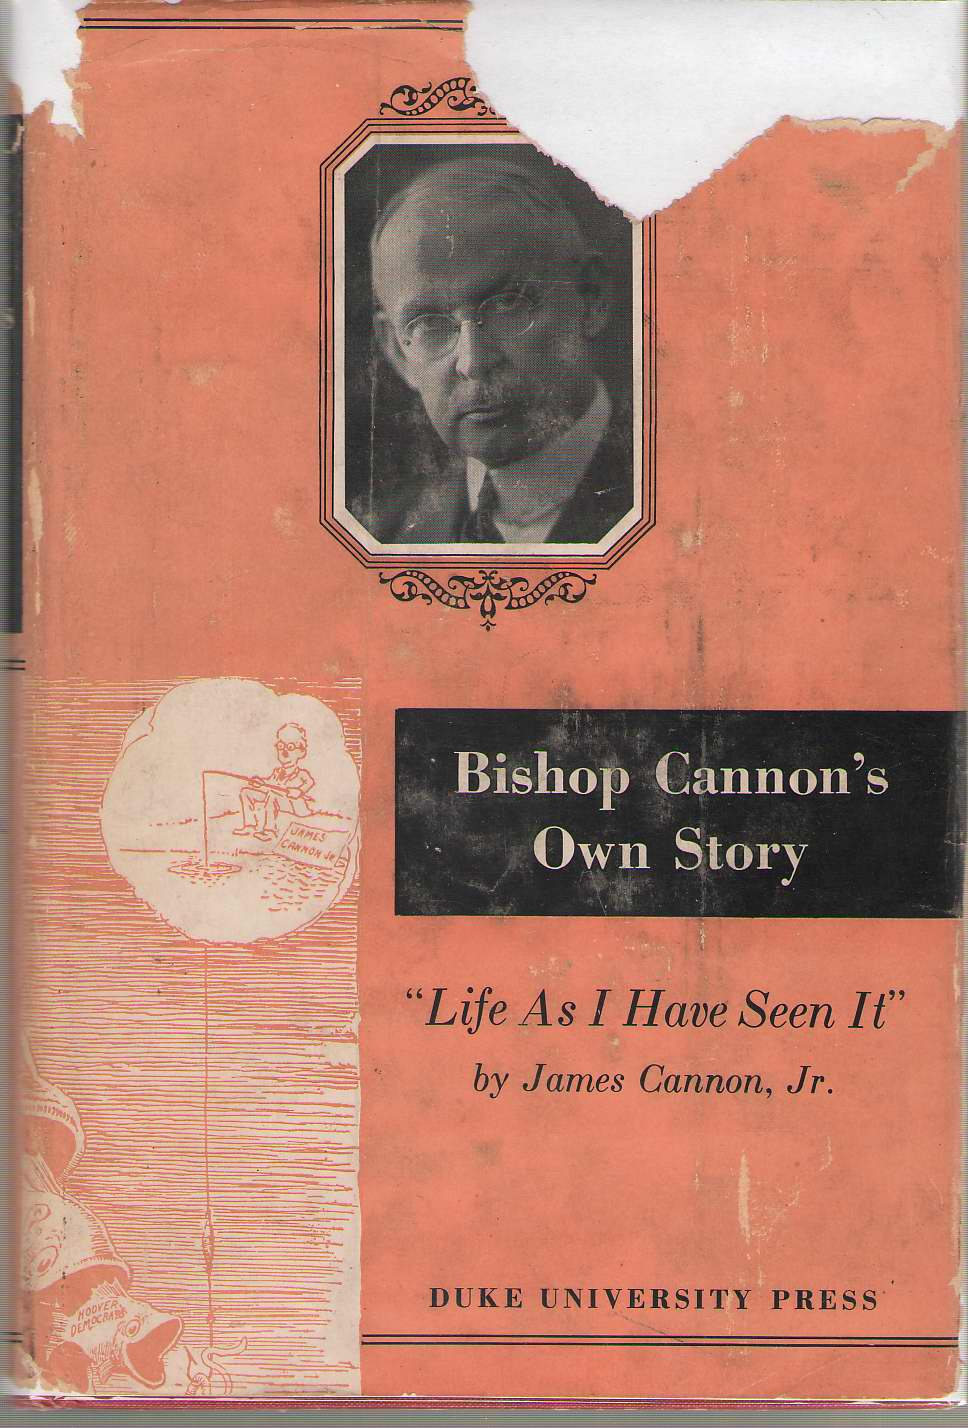 """Bishop Cannon's Own Story - """"Life As I Have Seen It"""", Cannon, James Jr. & Richard L. Watson, Jr."""